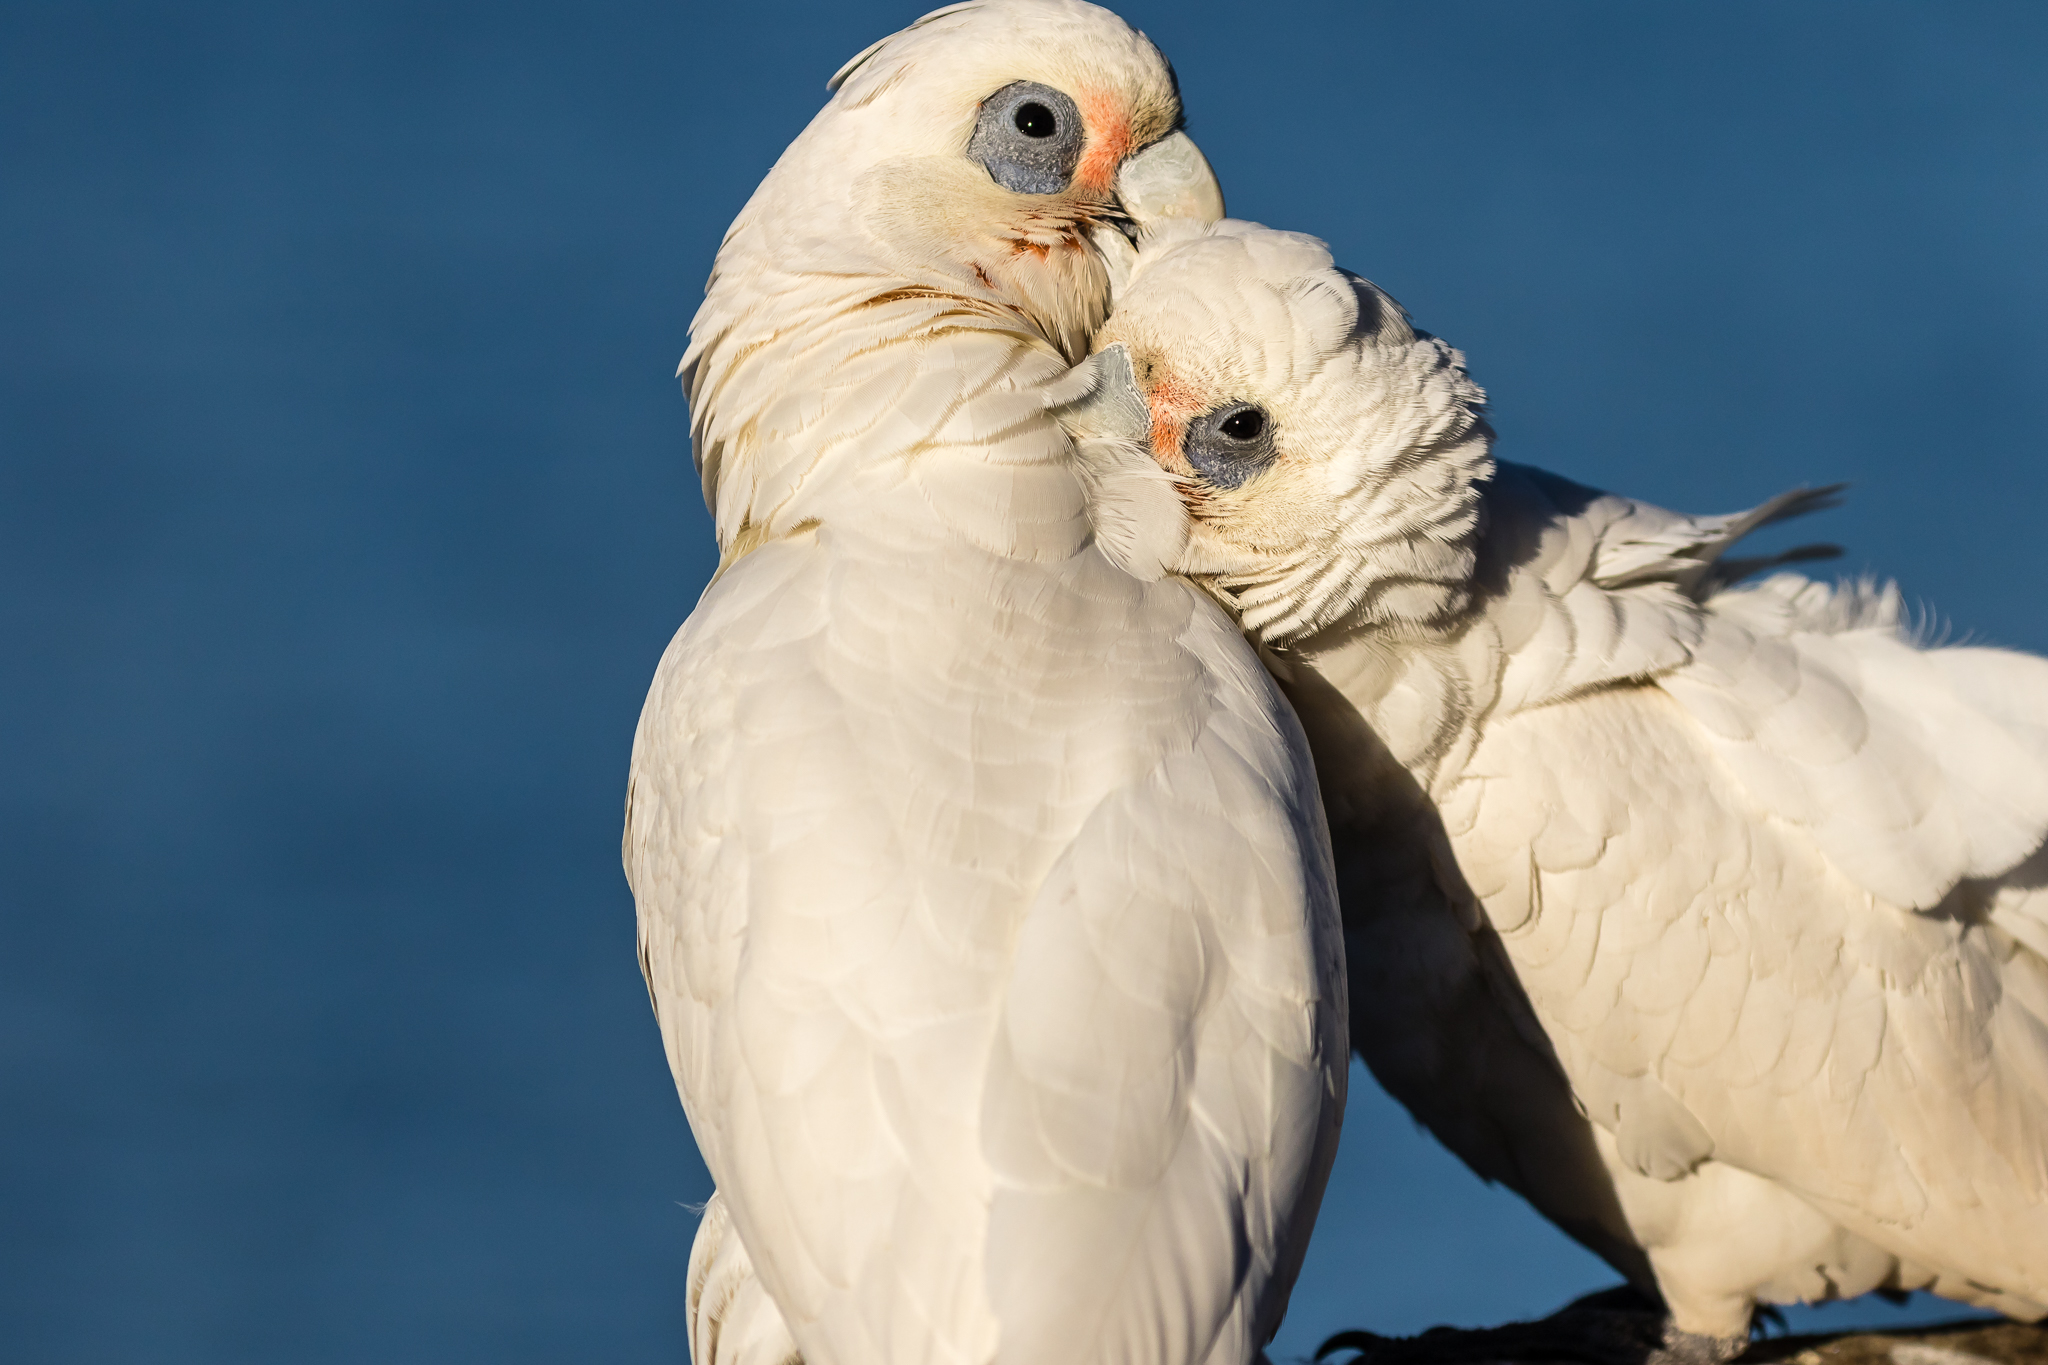 The Australian Cockatoo family includes these Little Corellas, Cockatiels and Galahs as well as the large Cockatoos. Little Corellas (39 cm) are found widely across Australia, sometimes in very big flocks, feeding mainly on grass-seeds.